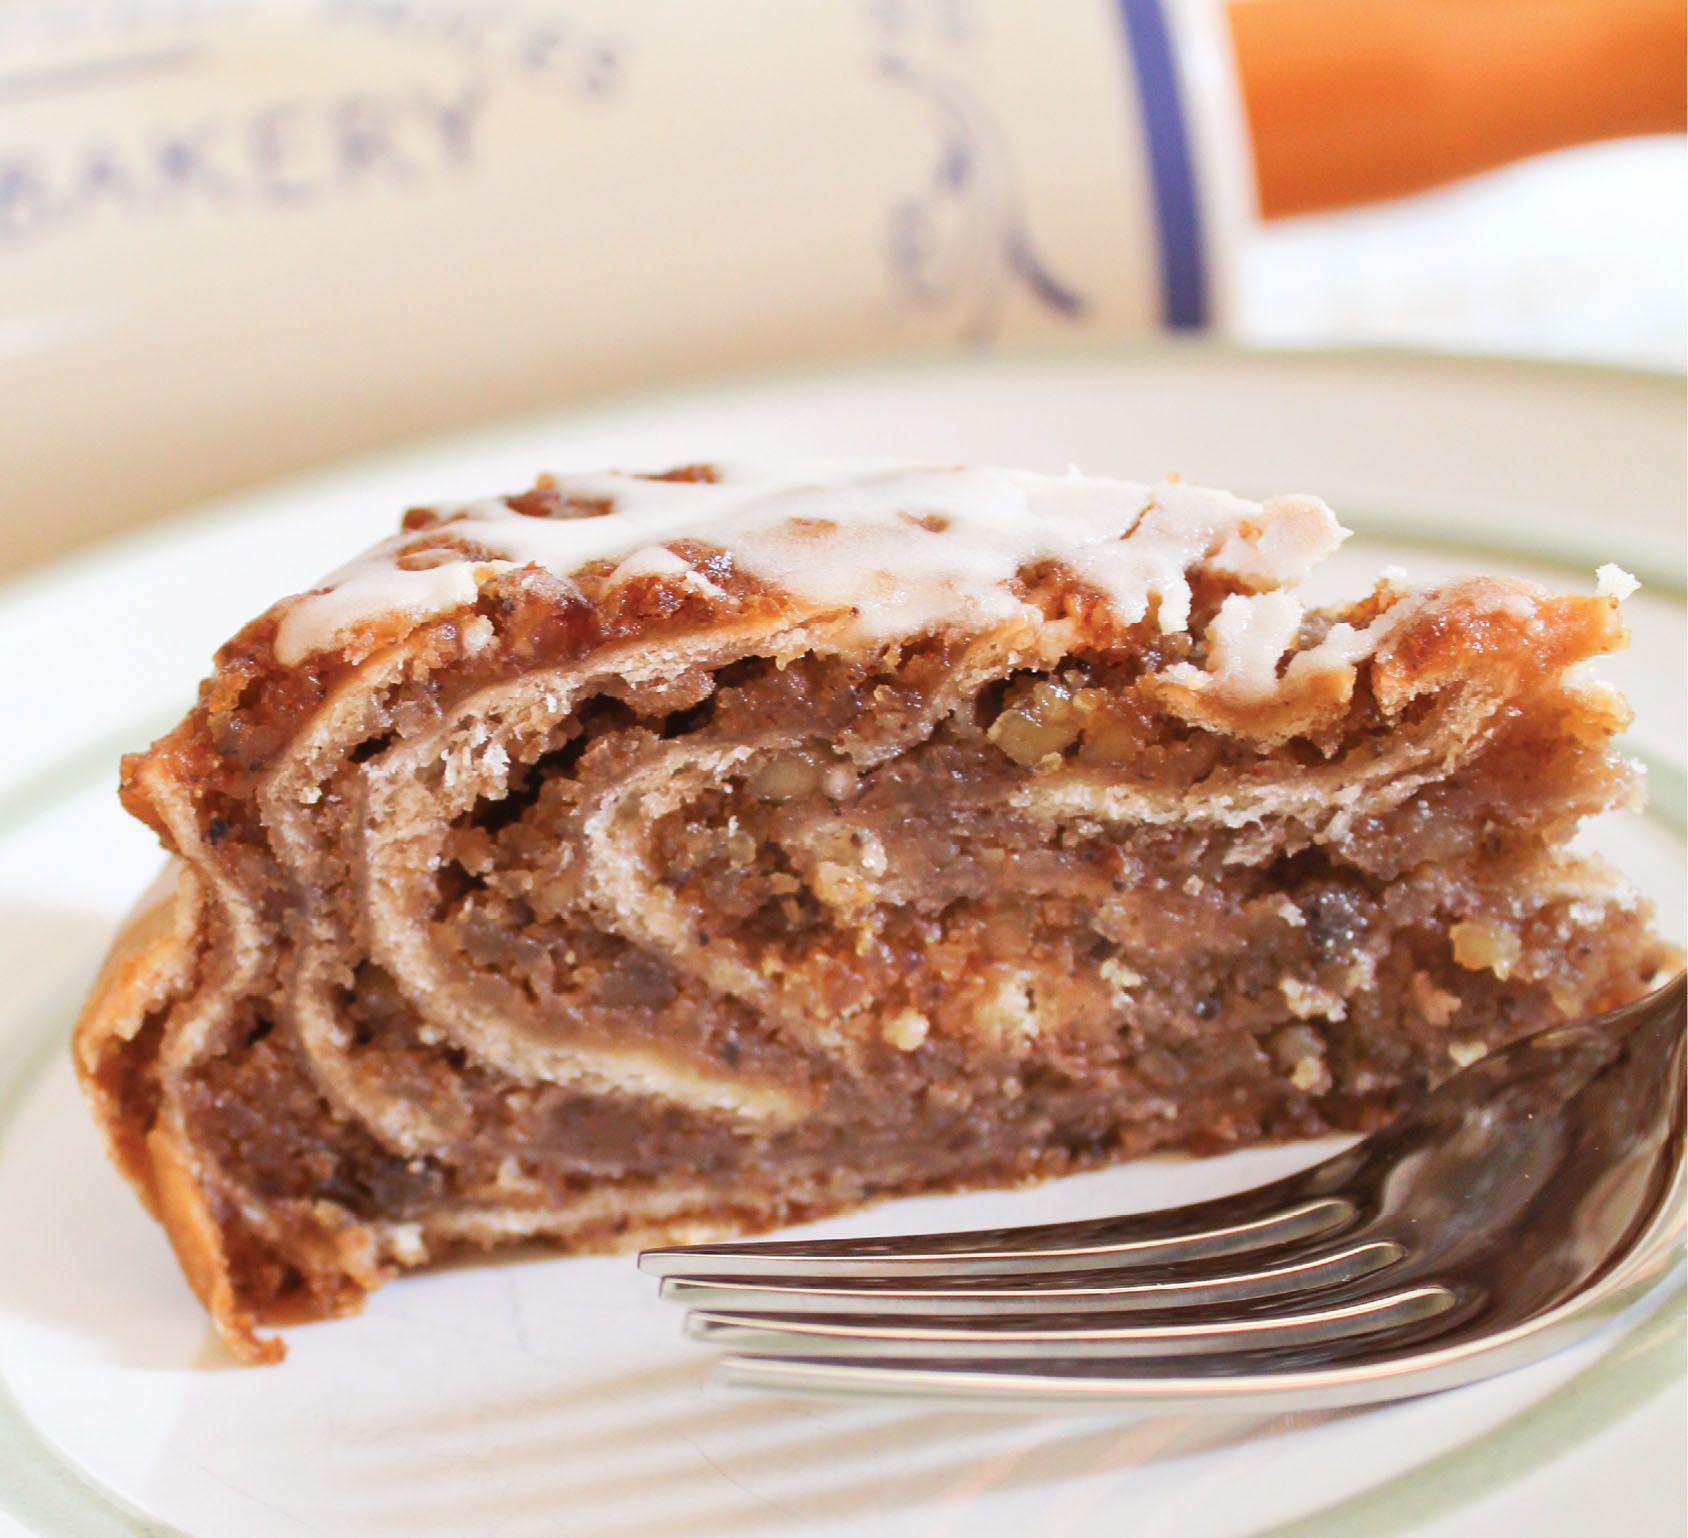 Our potica coffee cakes are crafted from the same dough